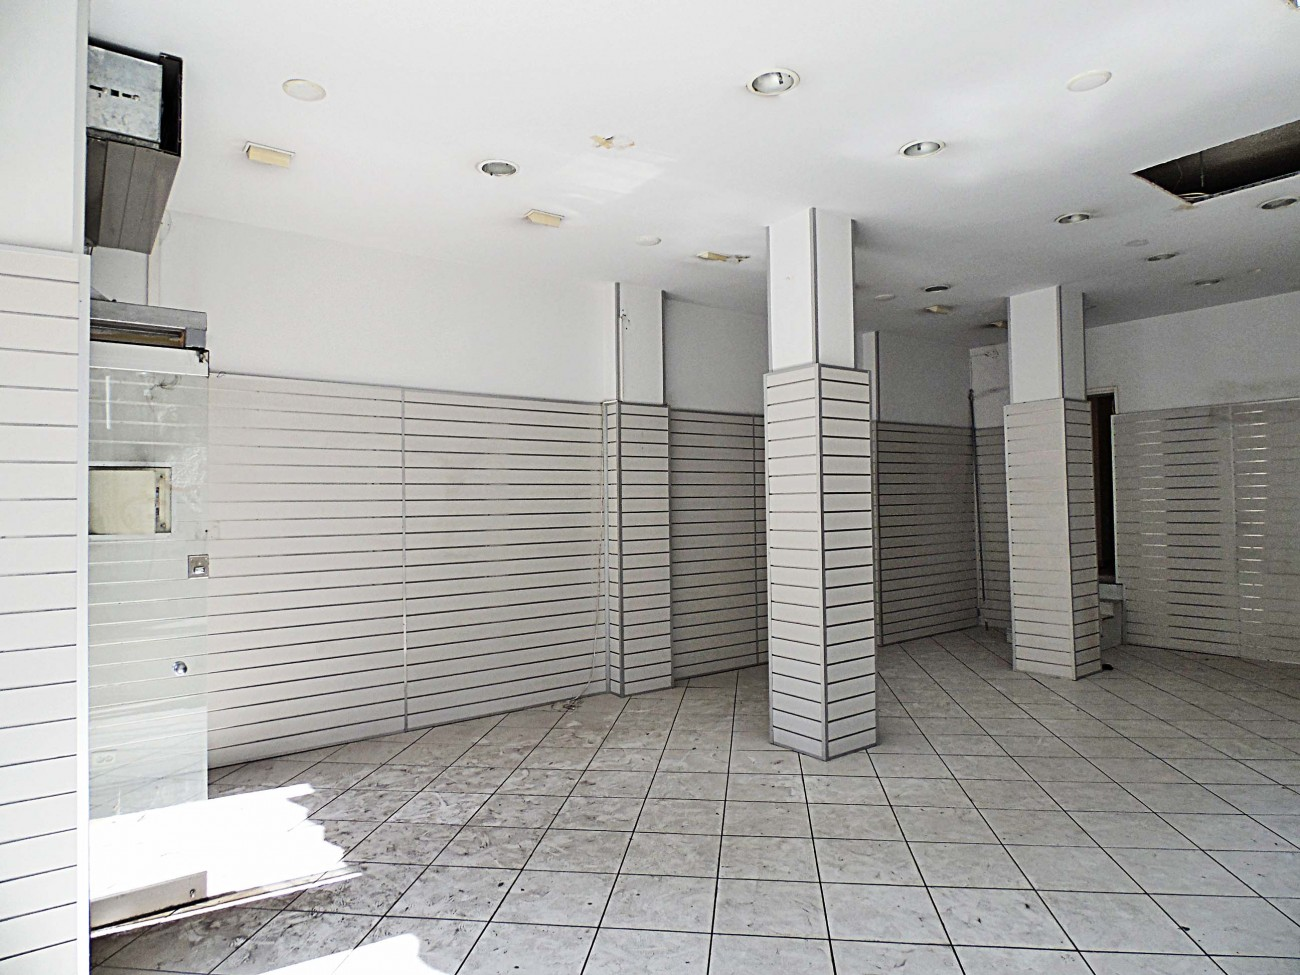 Shop for Rent in Pagkrati, Athens City Center, Greece